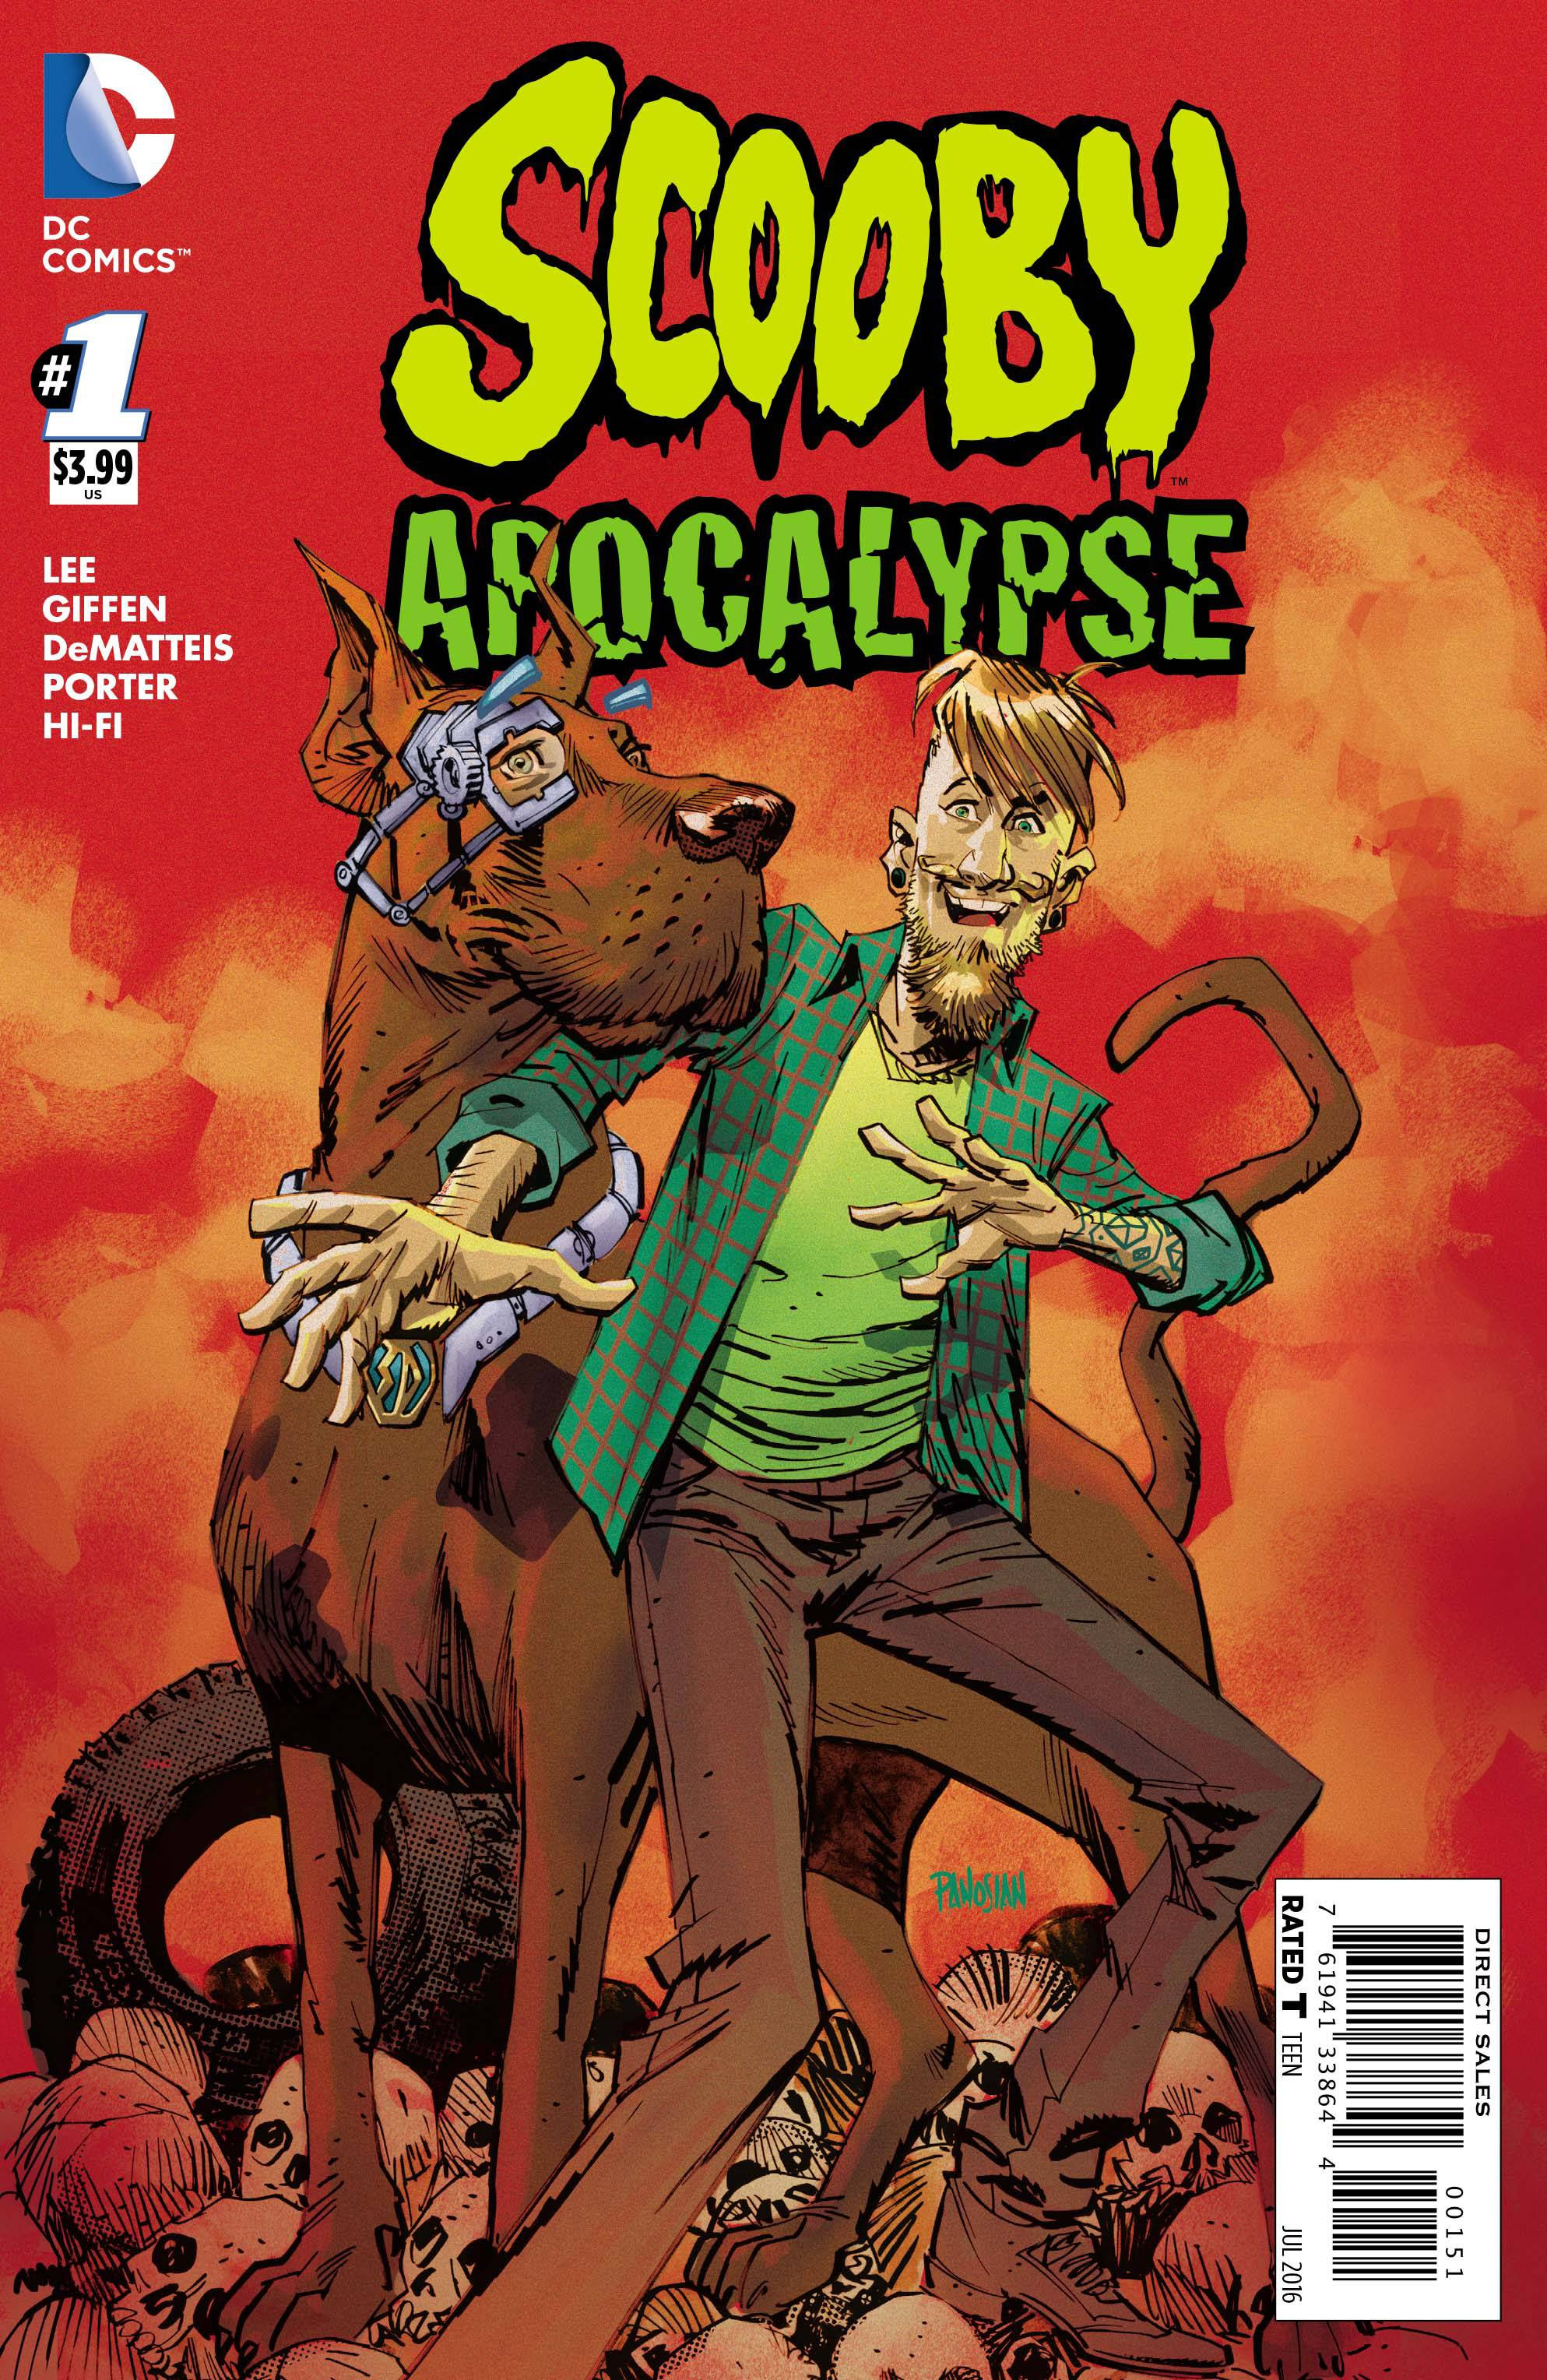 Scooby Apocalypse Issue One